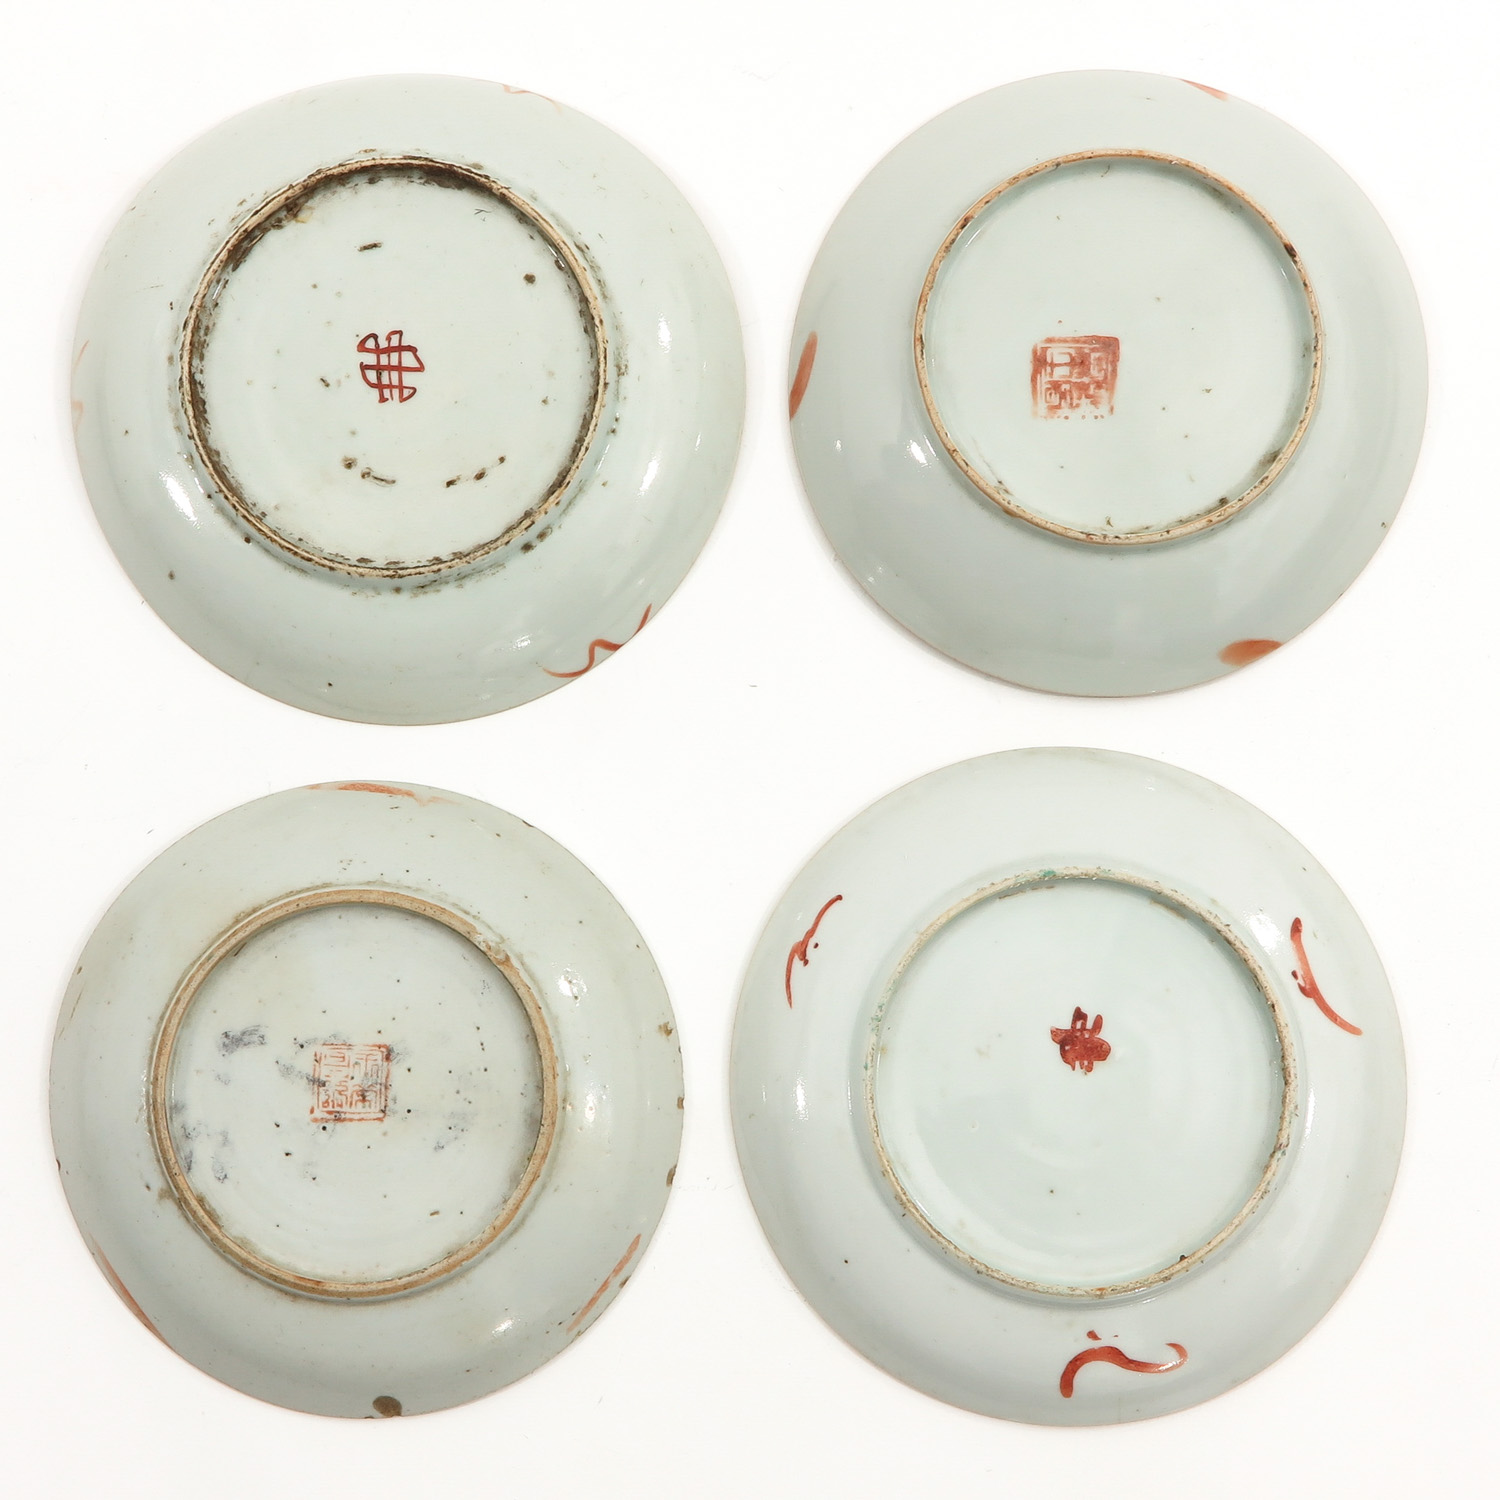 A Collection of 10 Polychrome Decor Plates - Image 4 of 10